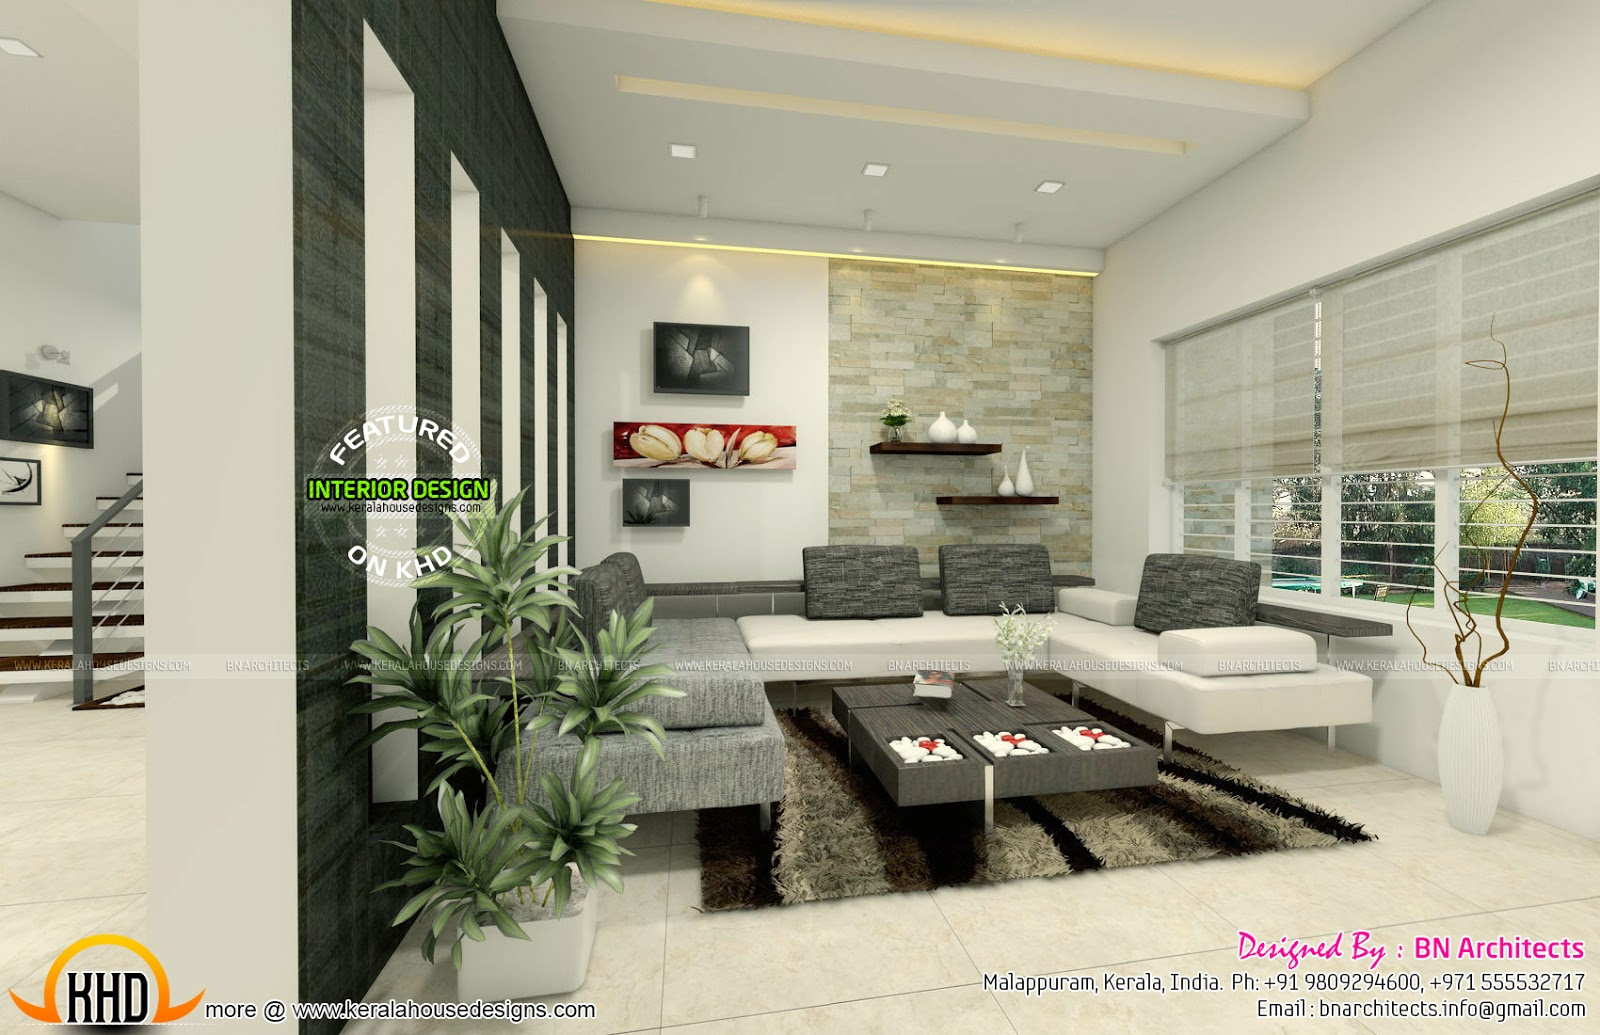 All in one house elevation floor plan and interiors for Kerala house living room interior design